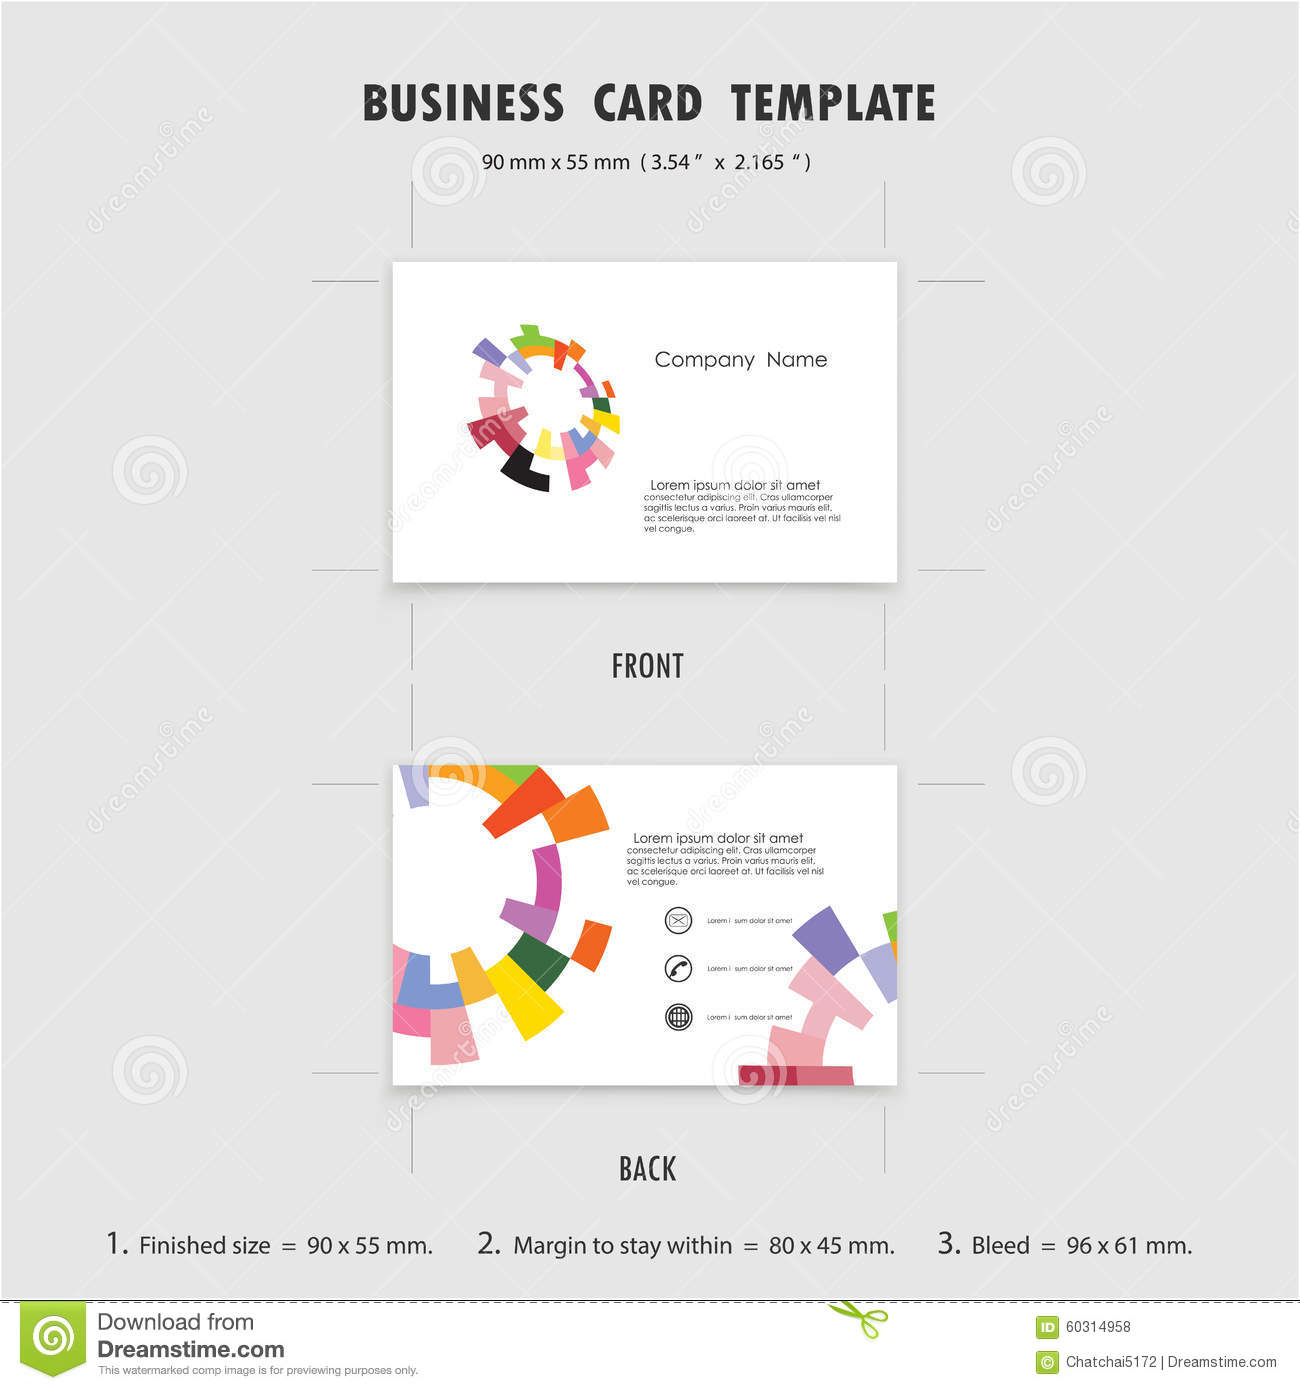 abstract creative business cards design template size 90mmx55mm stock vector image 60314958. Black Bedroom Furniture Sets. Home Design Ideas